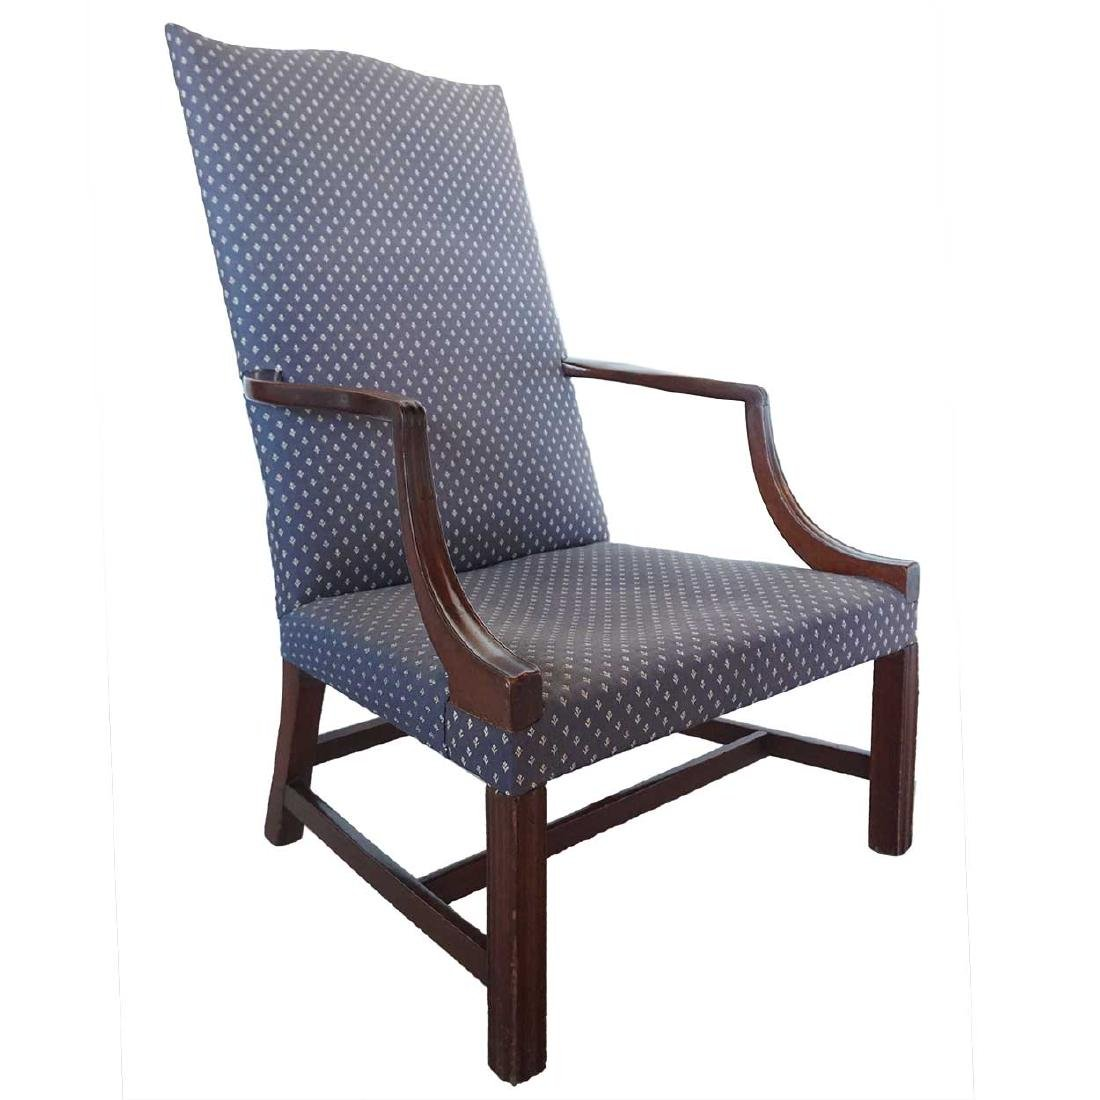 American New England Chippendale Mahogany Armchair